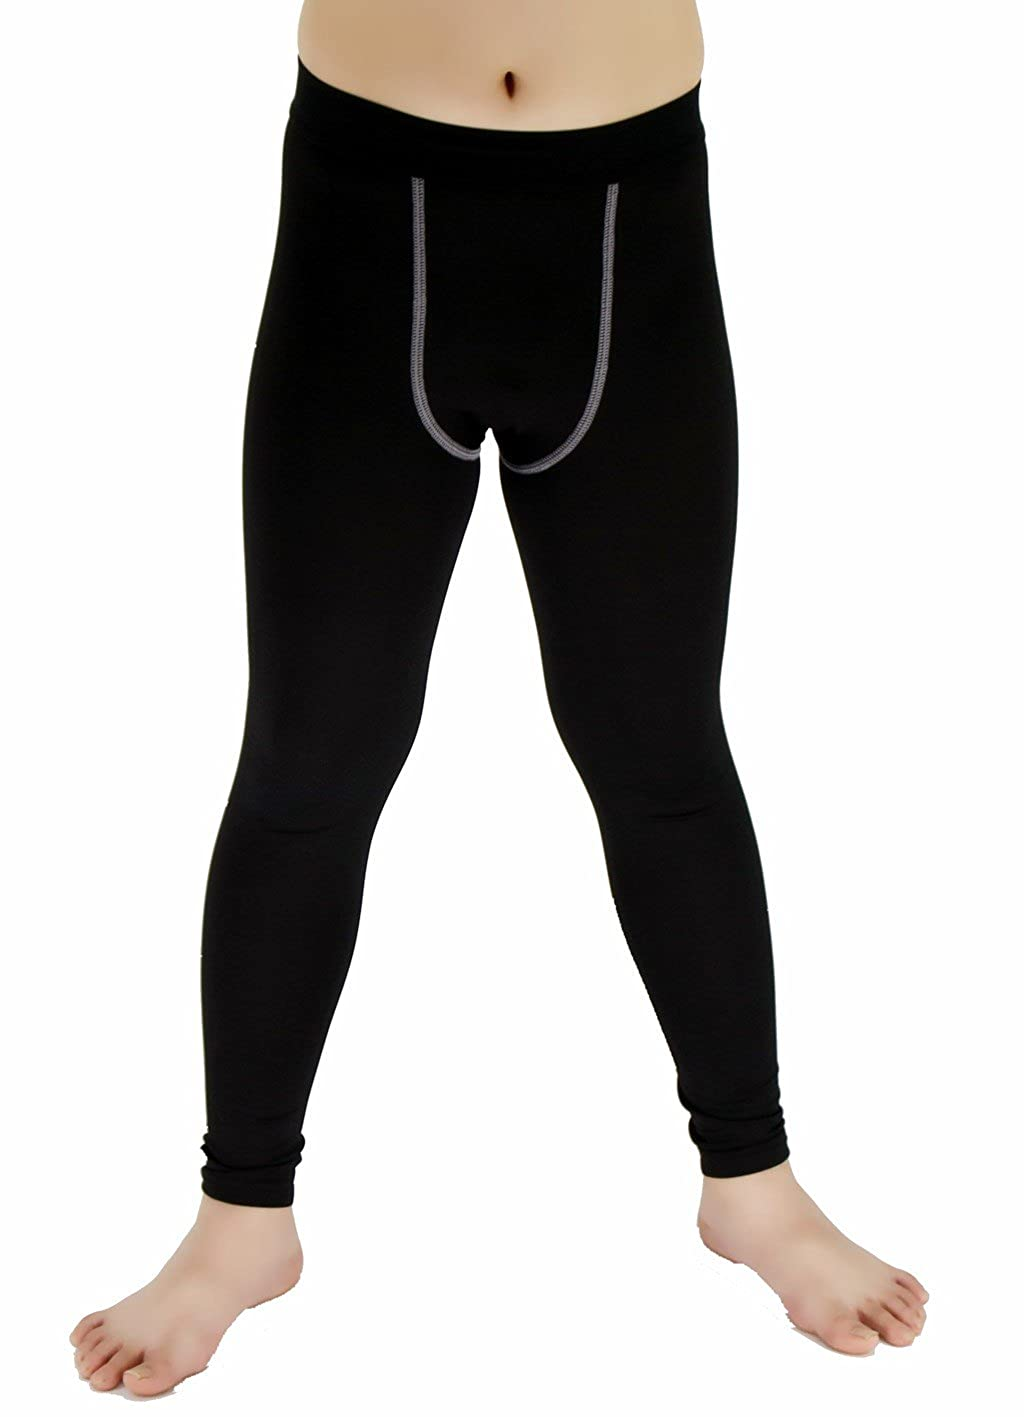 35d0510a5b Amazon.com: Lanbaosi Boys & Girls Sports Thermal Compression Base Layer  Legging/Tights: Clothing